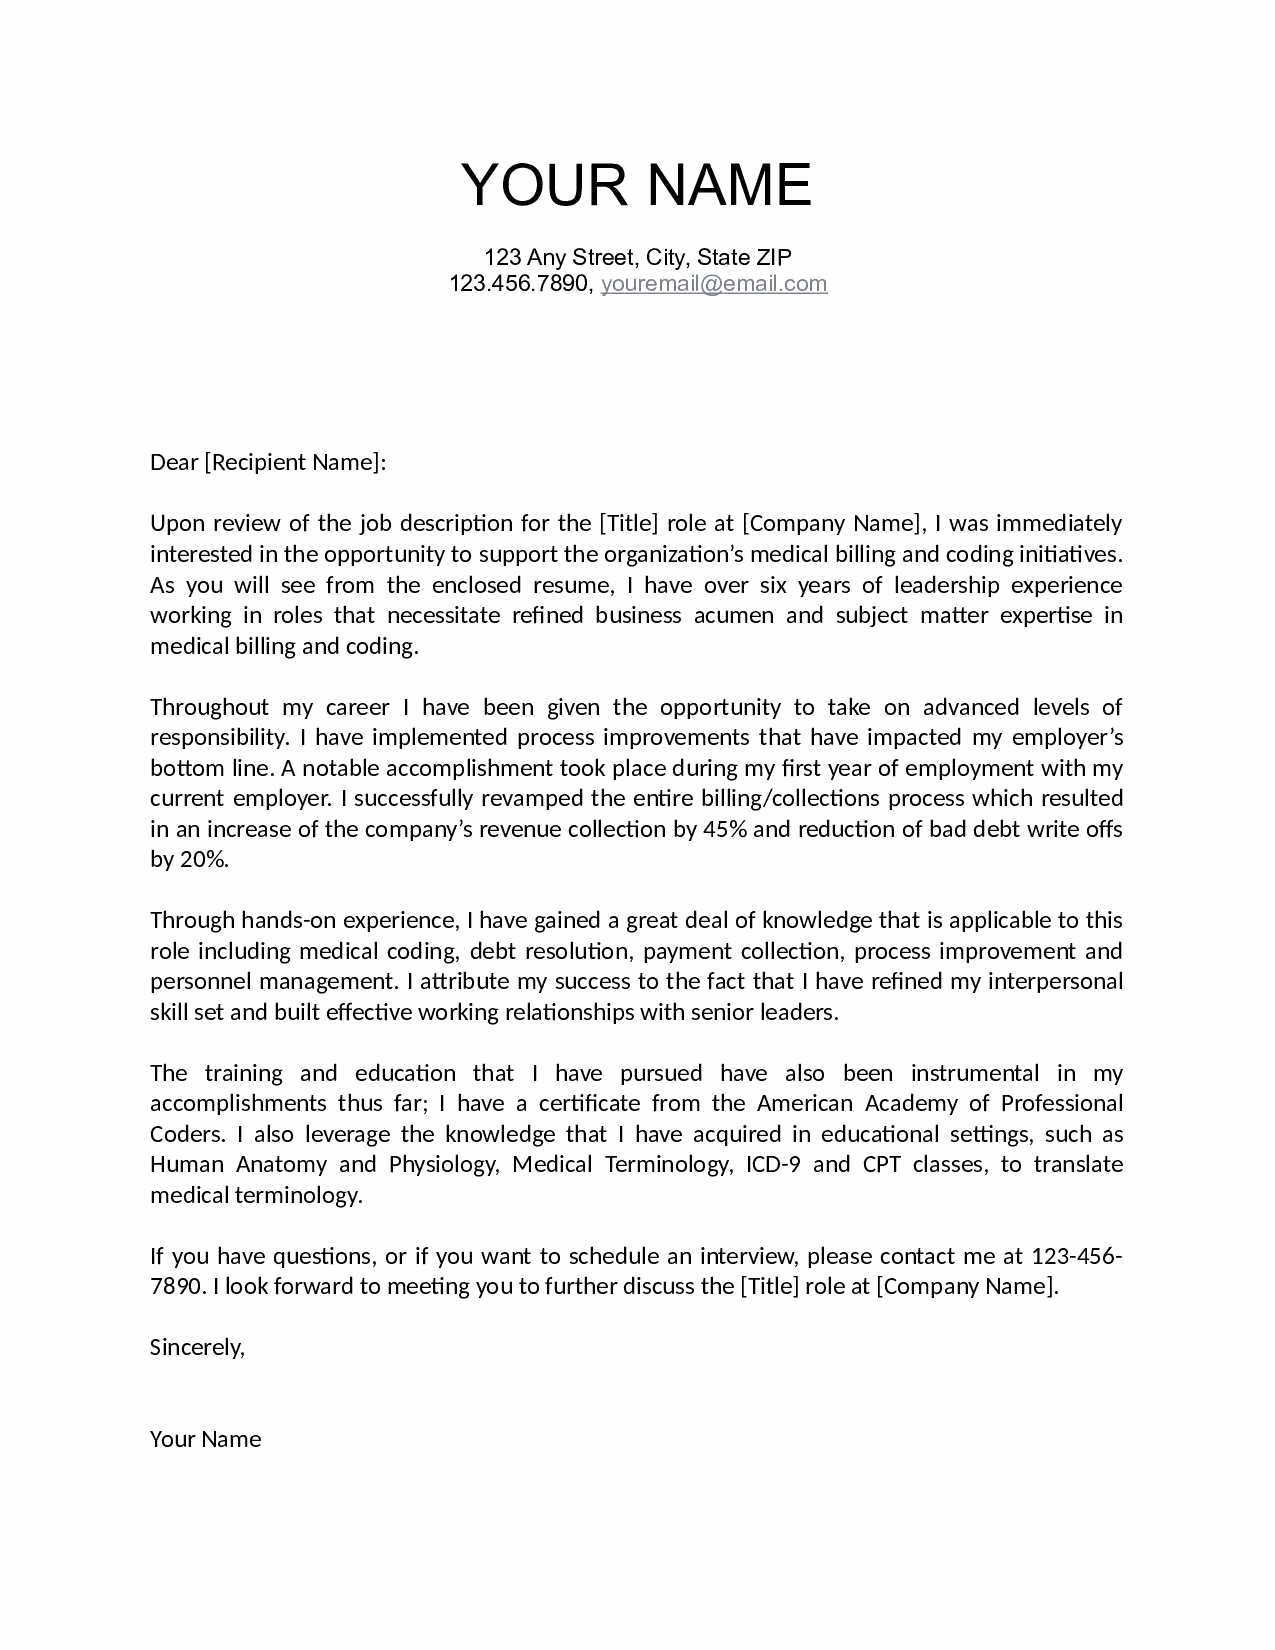 Pr Cover Letter Template - Pr Cover Letter Samples New Job Fer Letter Template Us Copy Od